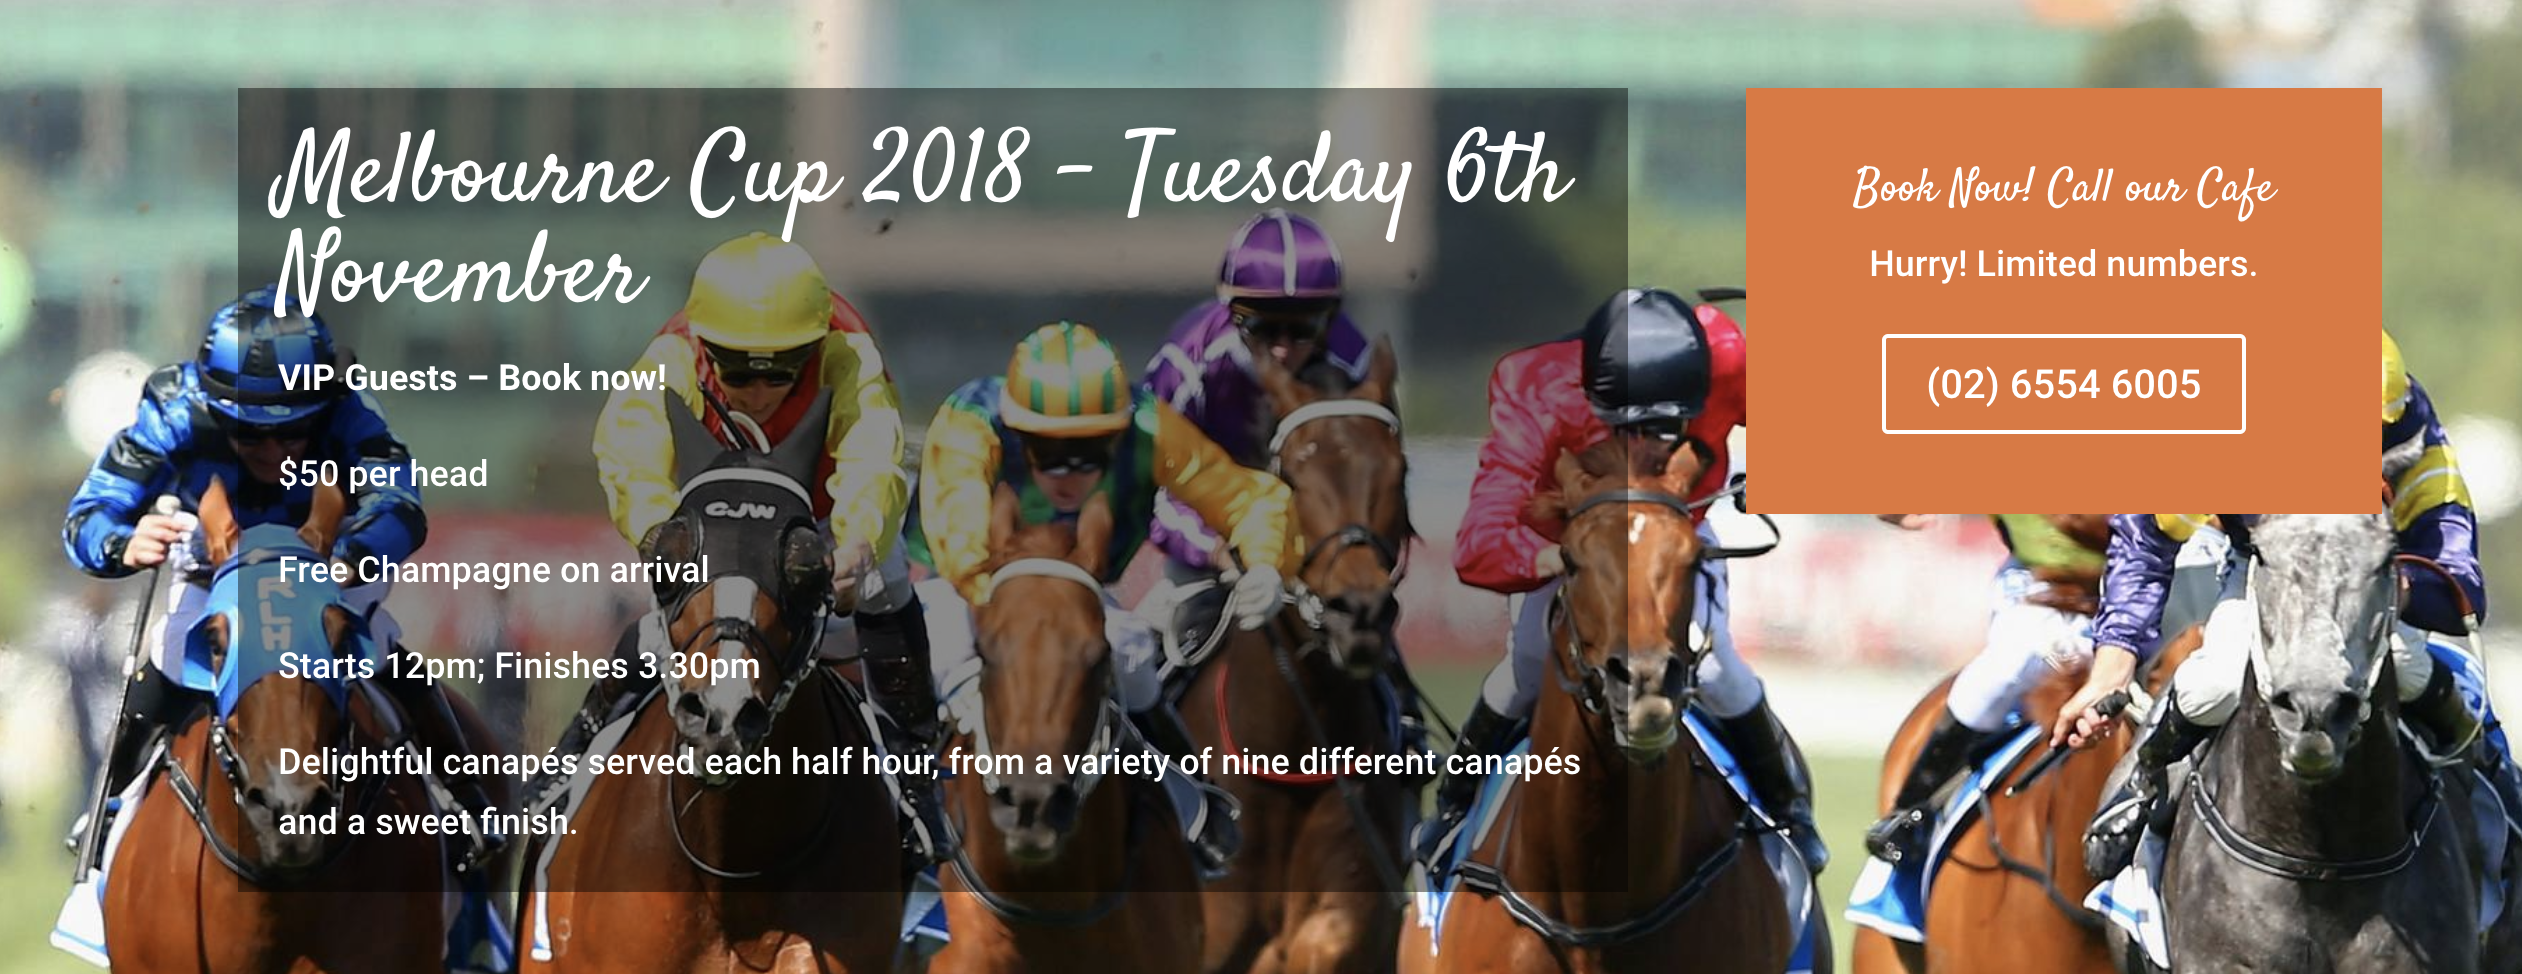 lakes-and-oceans-melbourne-cup-event